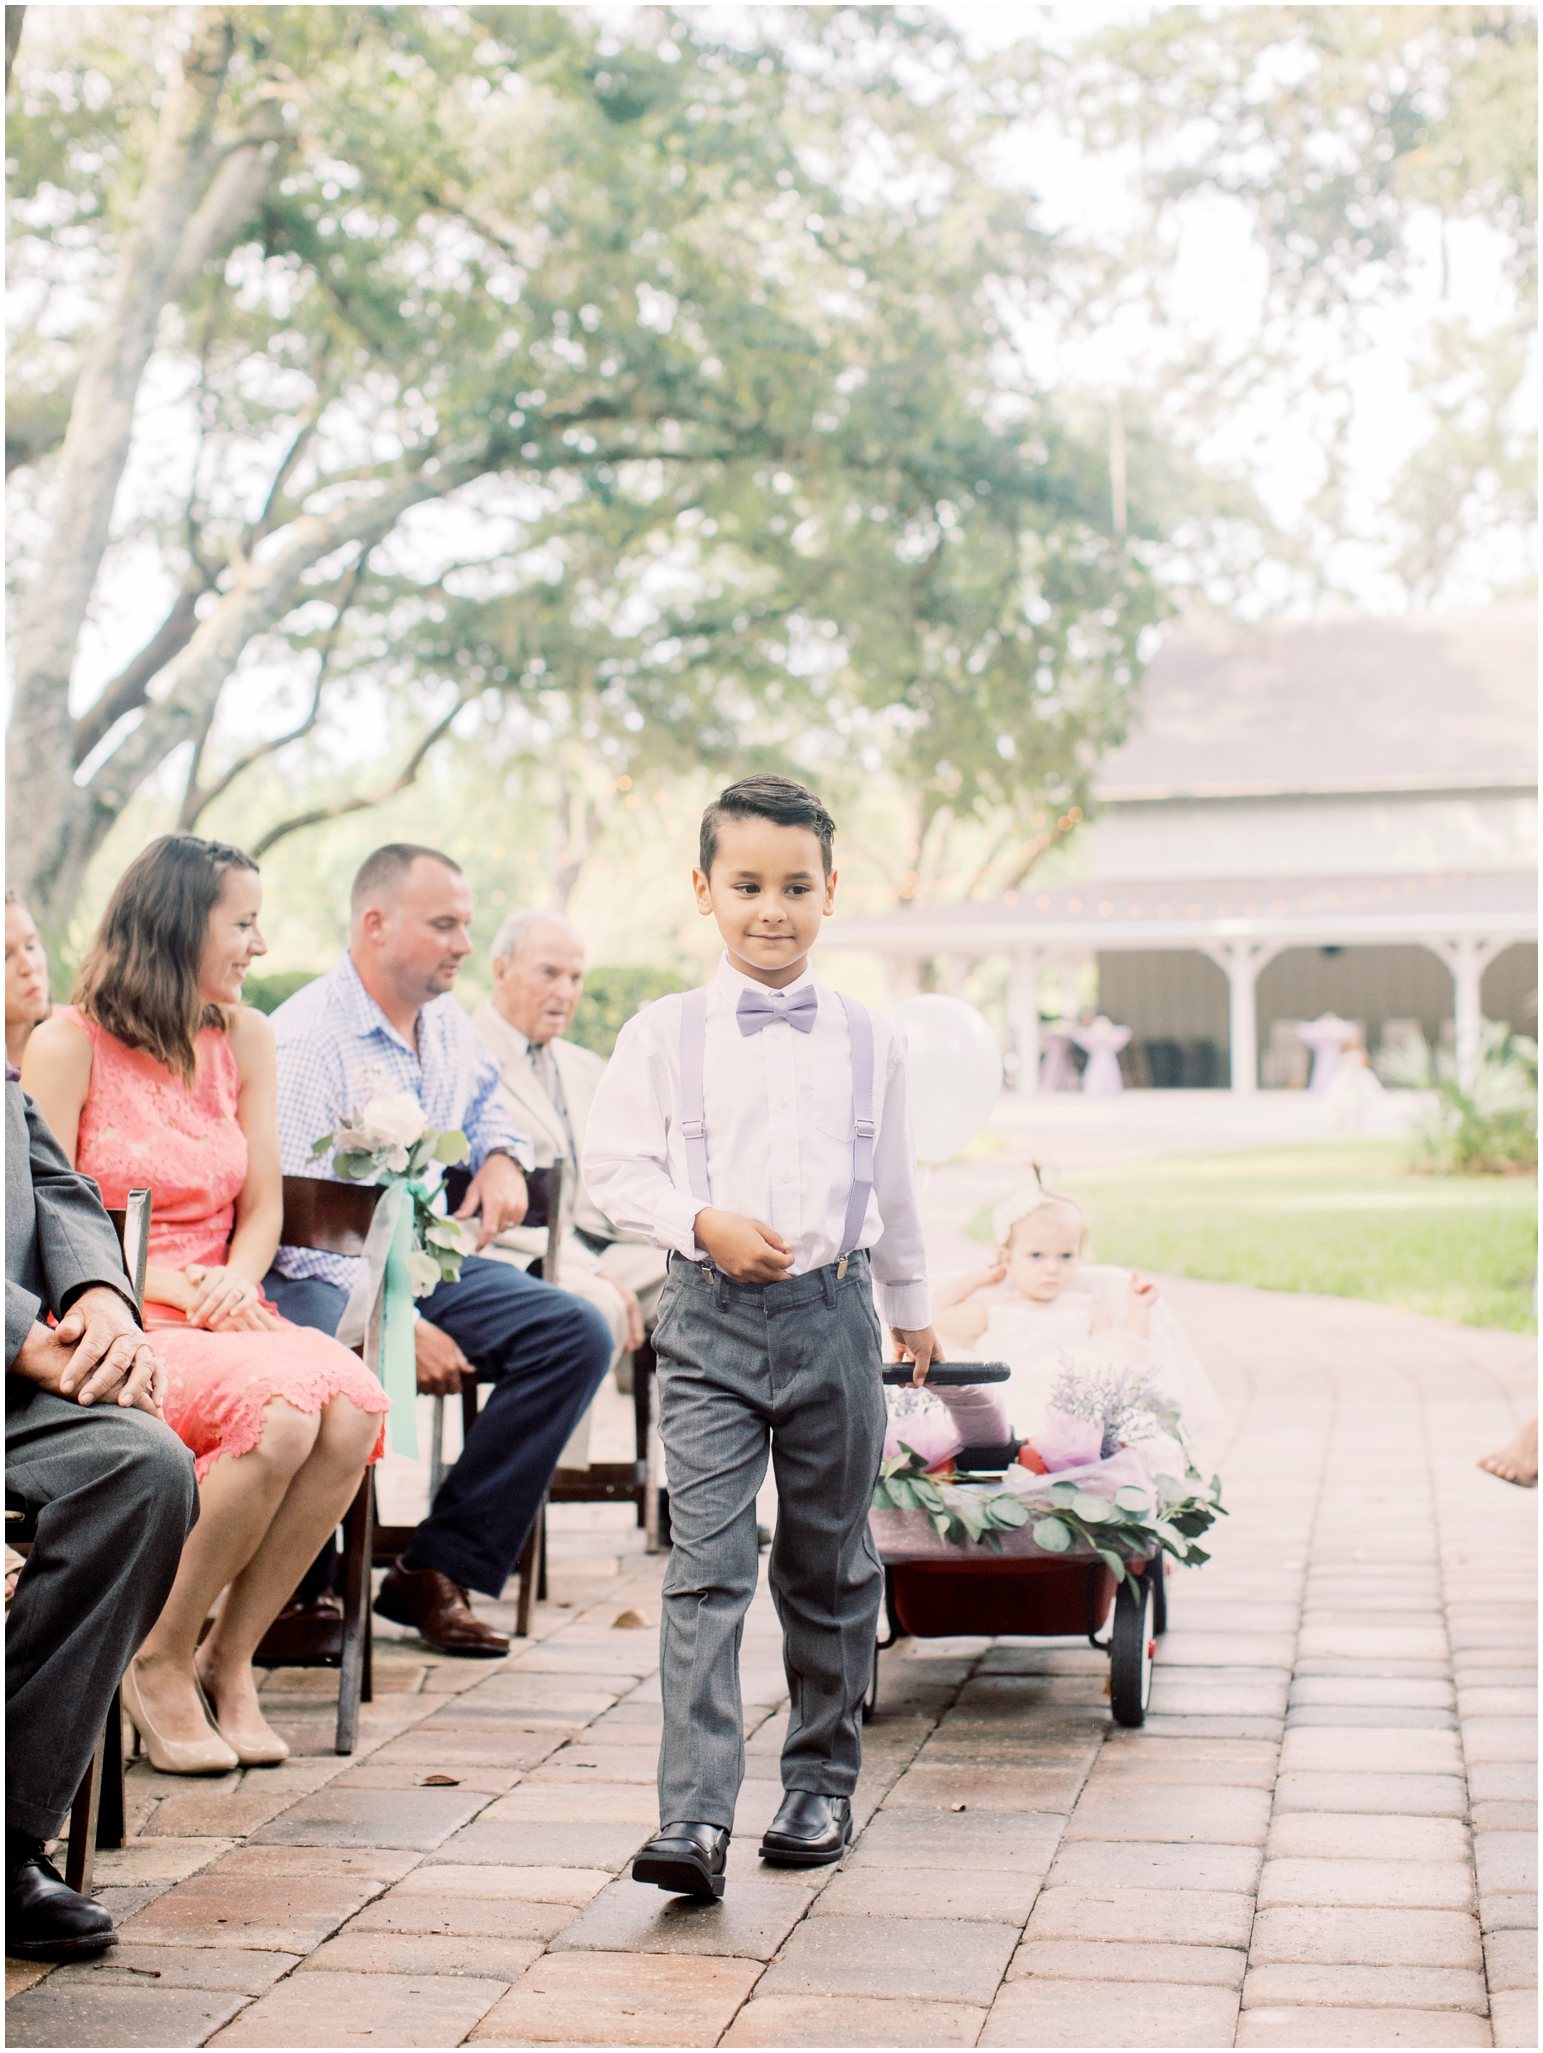 Lisa Silva Photography- Jacksonville, St Augustine, Fernandina Beach, Amelia Island, Ponte Vedra Beach, North East Florida Fine Art Film Photographer- Ashley and Shawn's wedding at bowing oaks plantation_0055.jpg